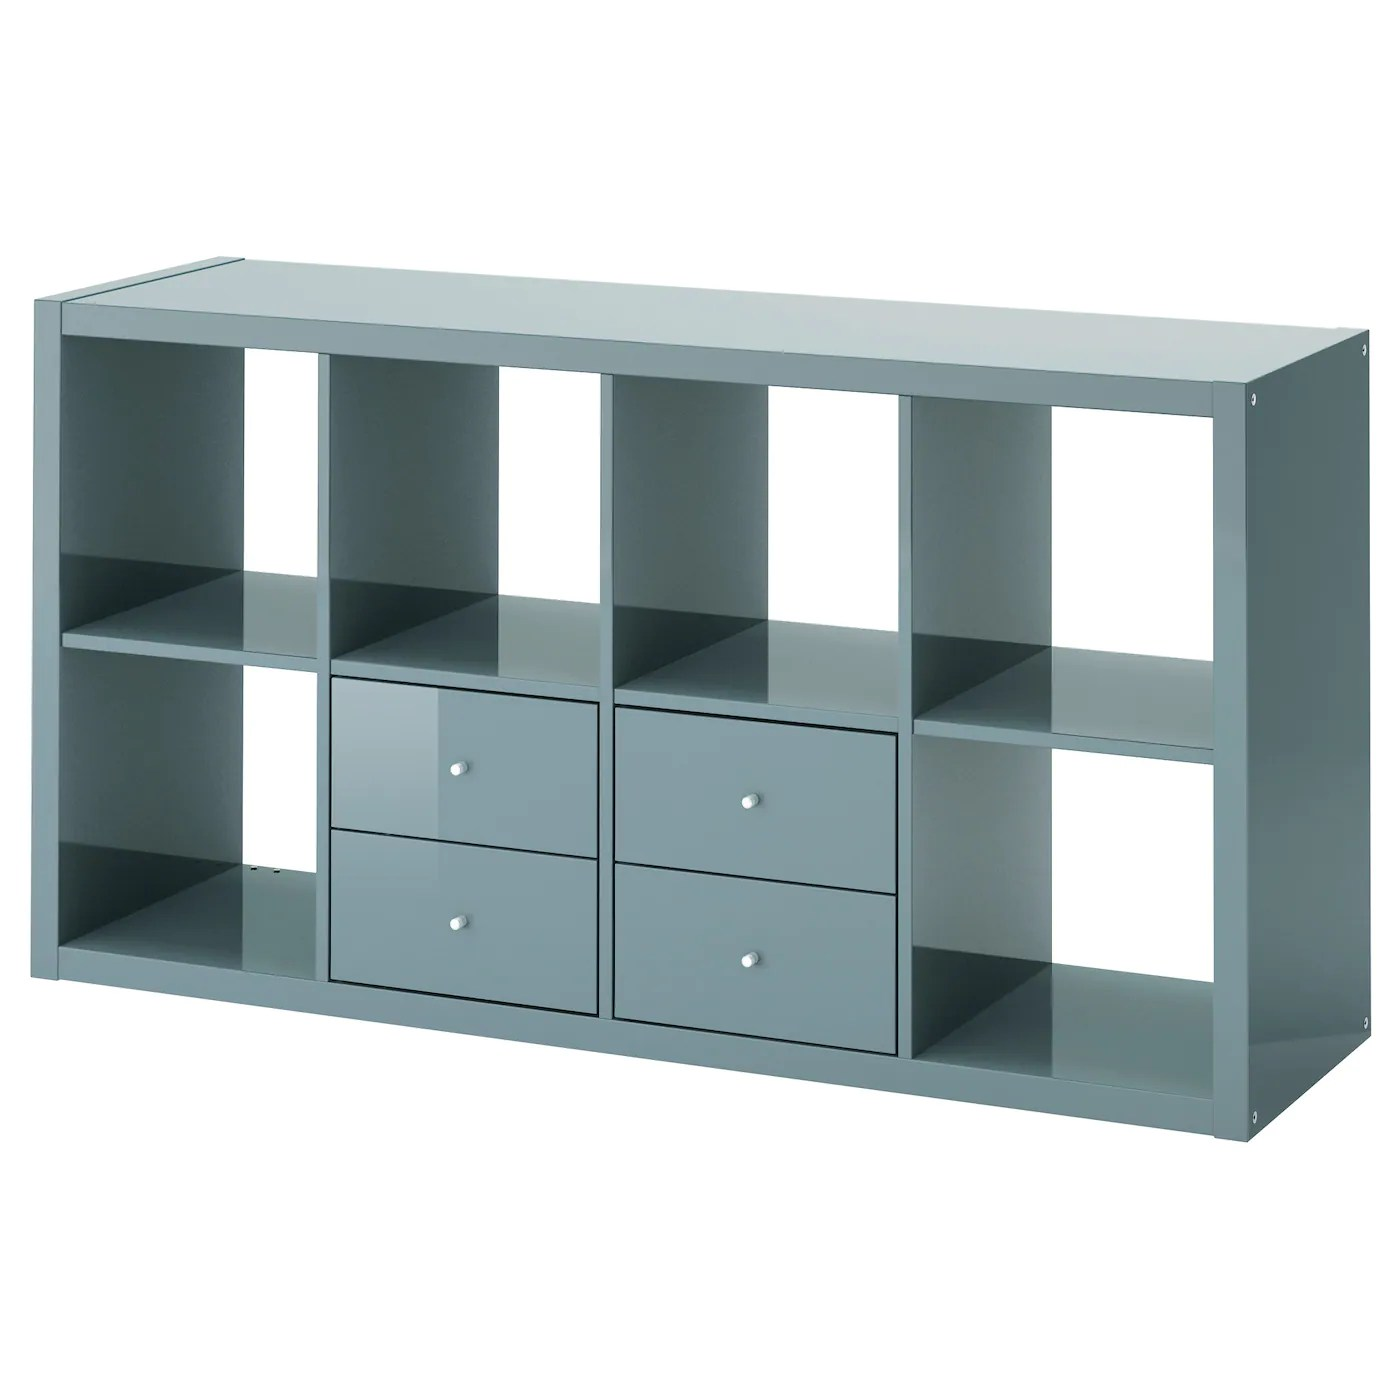 Ikea Kasten Hoch Kallax Shelving Unit With 2 Inserts High Gloss Grey